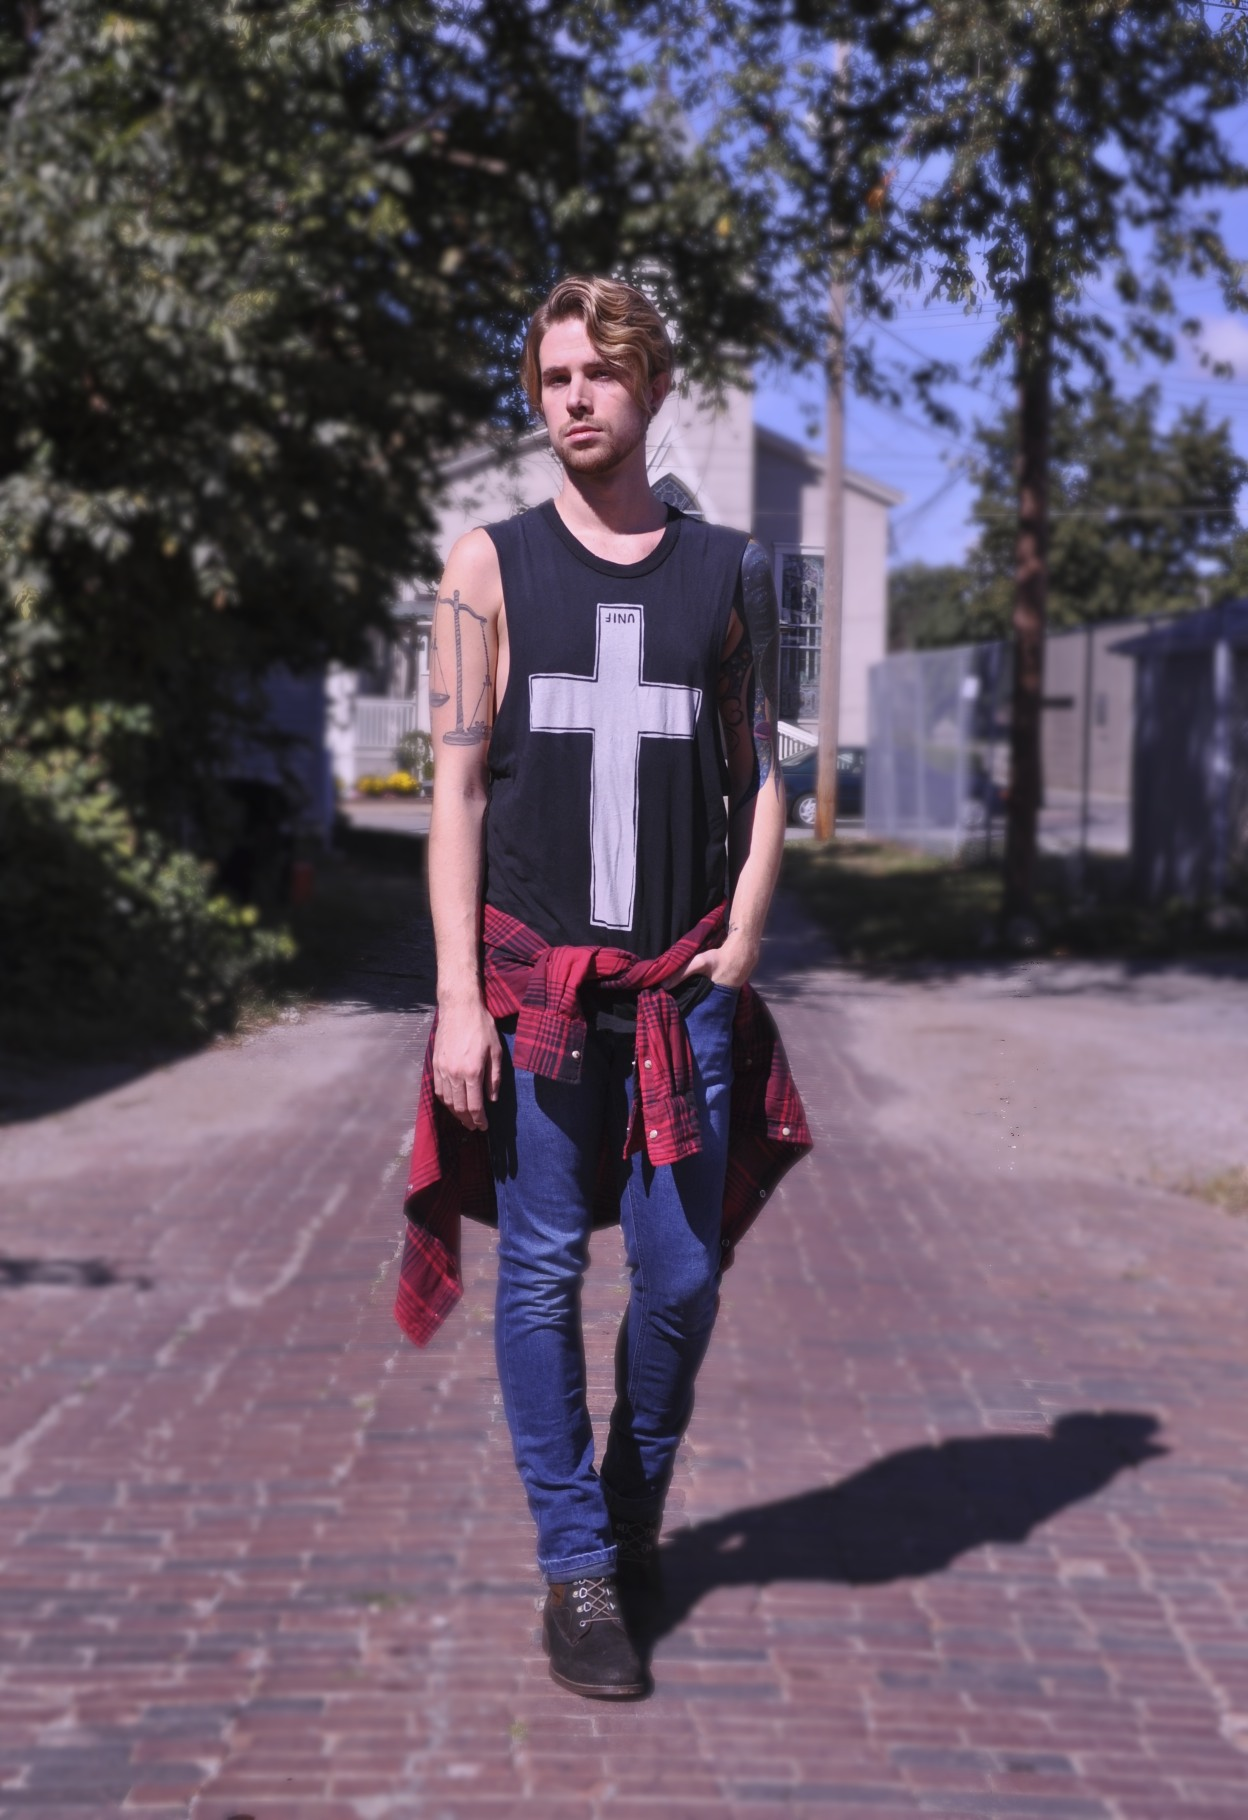 UNIF Worship Tank with JACHS Buffalo Plaid Shirt over Topman Denim with J Shoes Boots